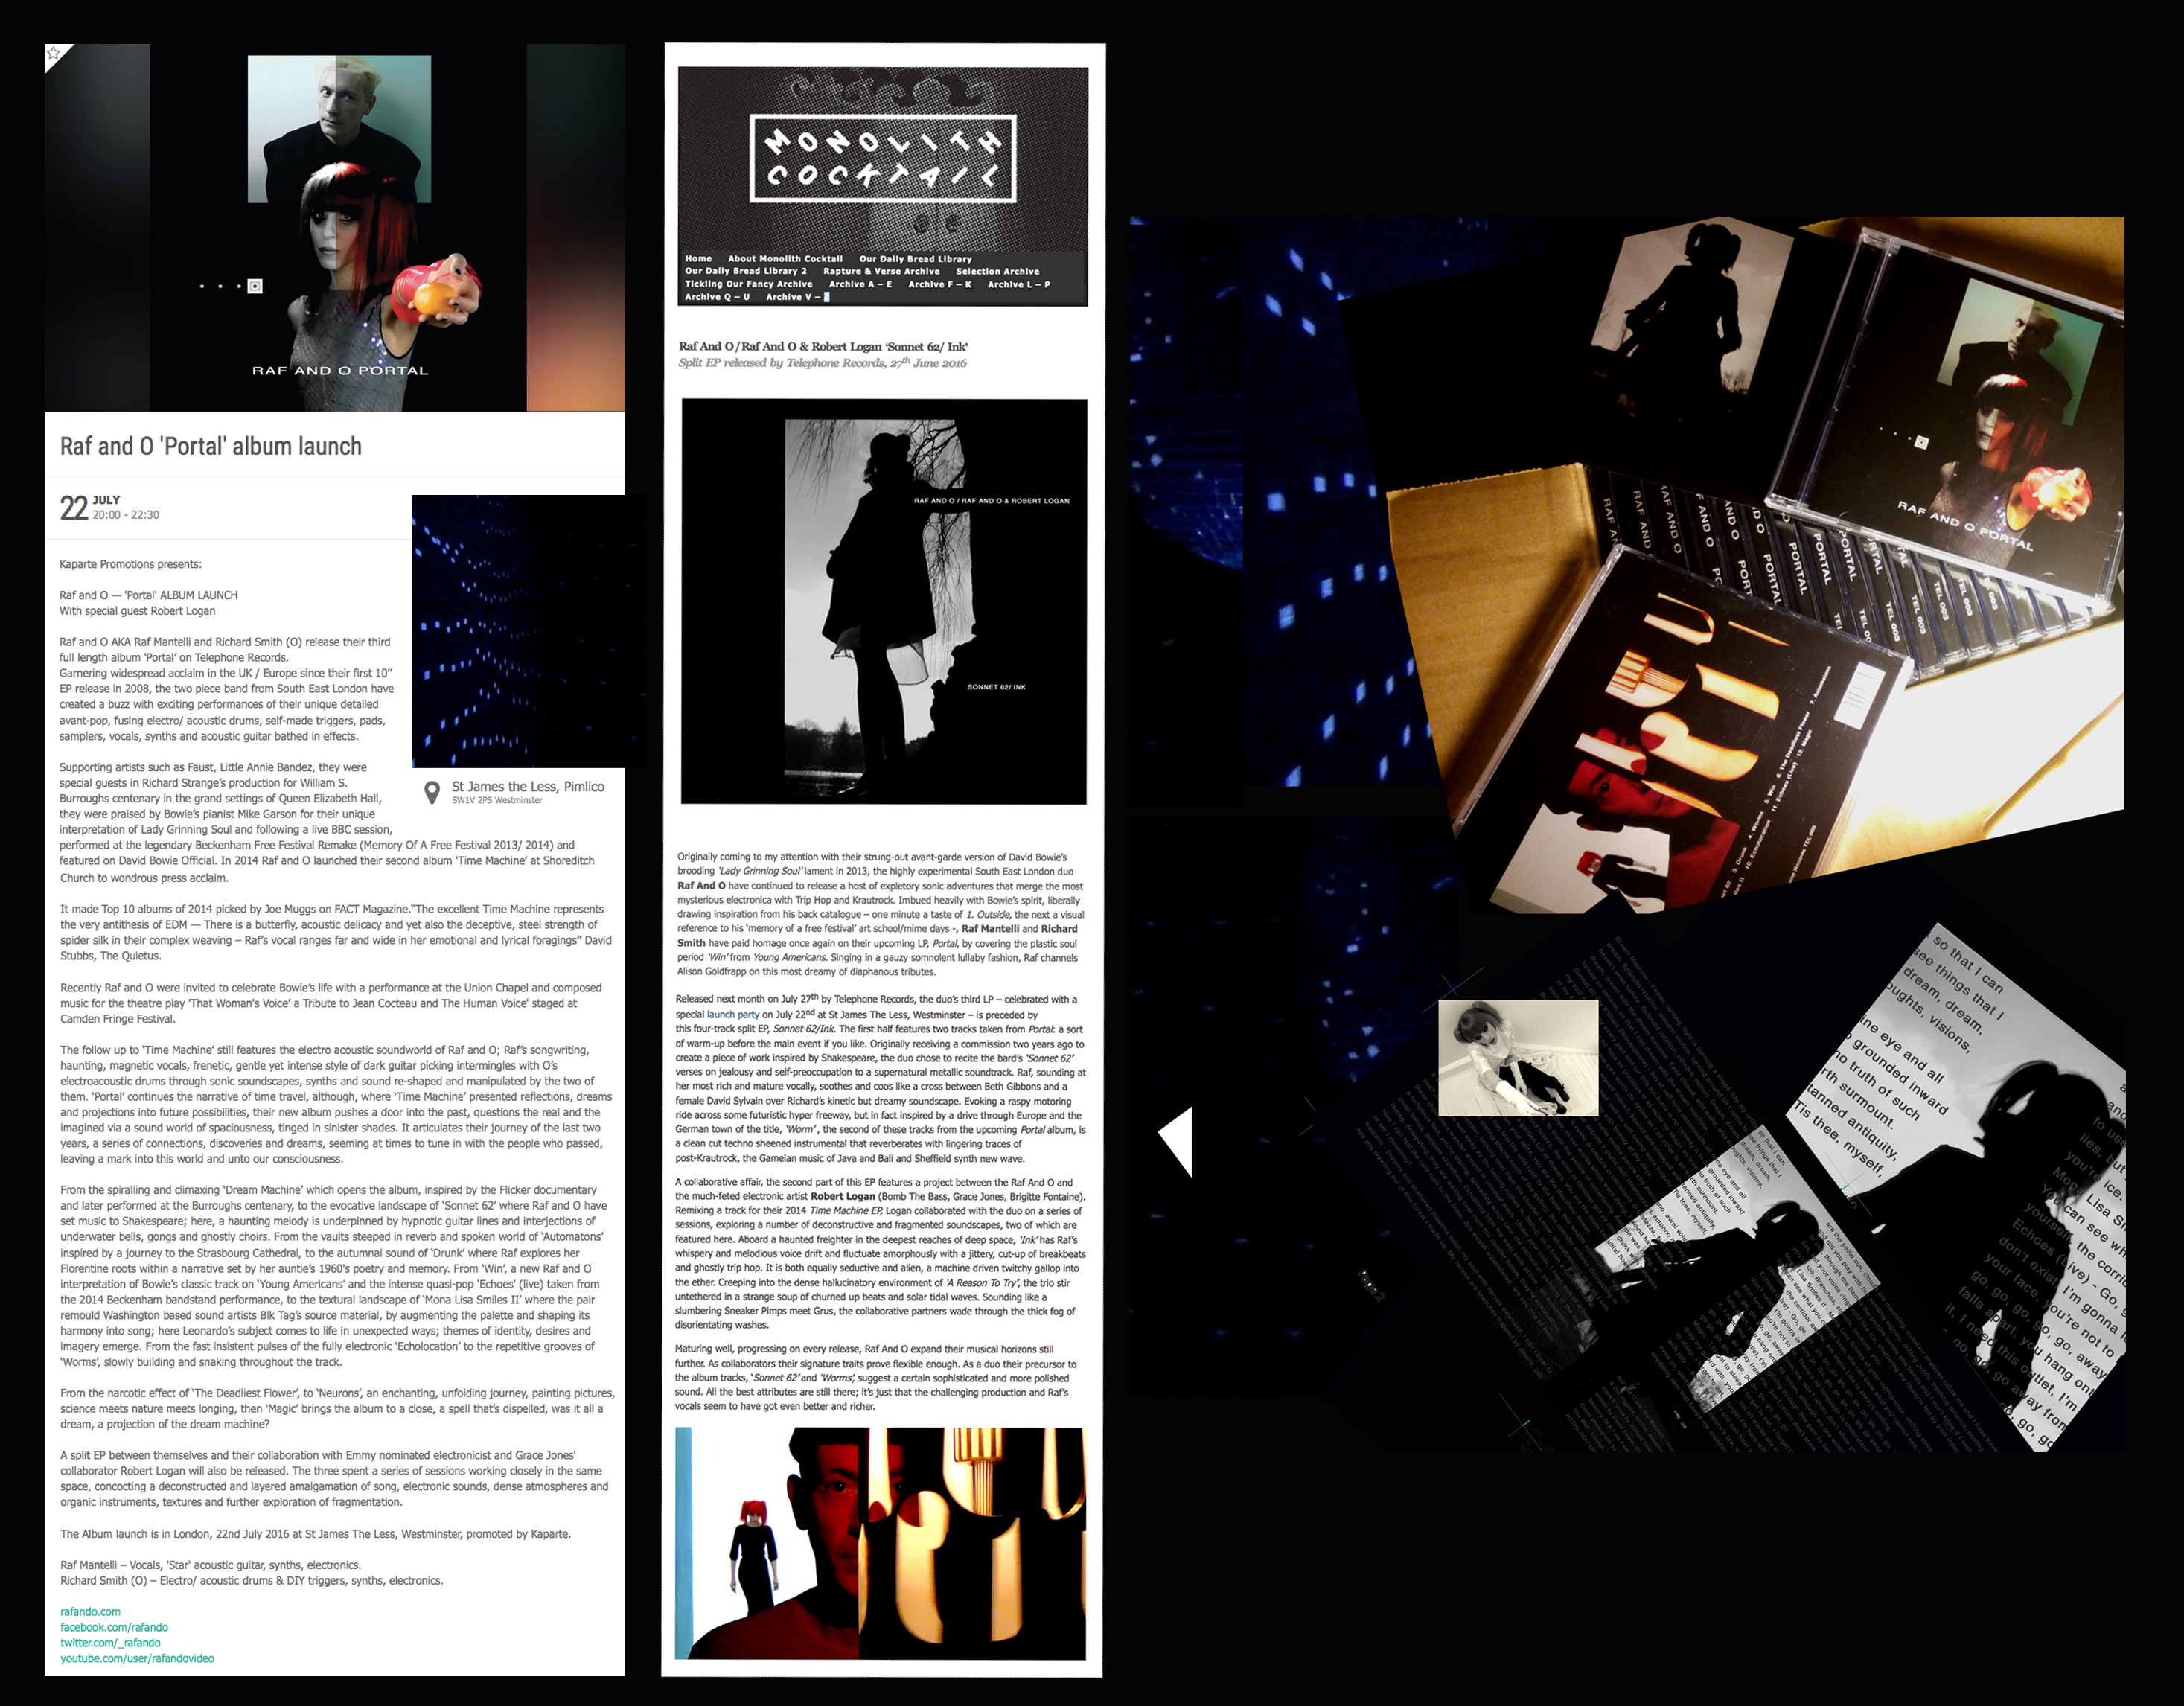 Raf and O Portal launch + Sonnet 62: Ink Review Monolith Cocktail